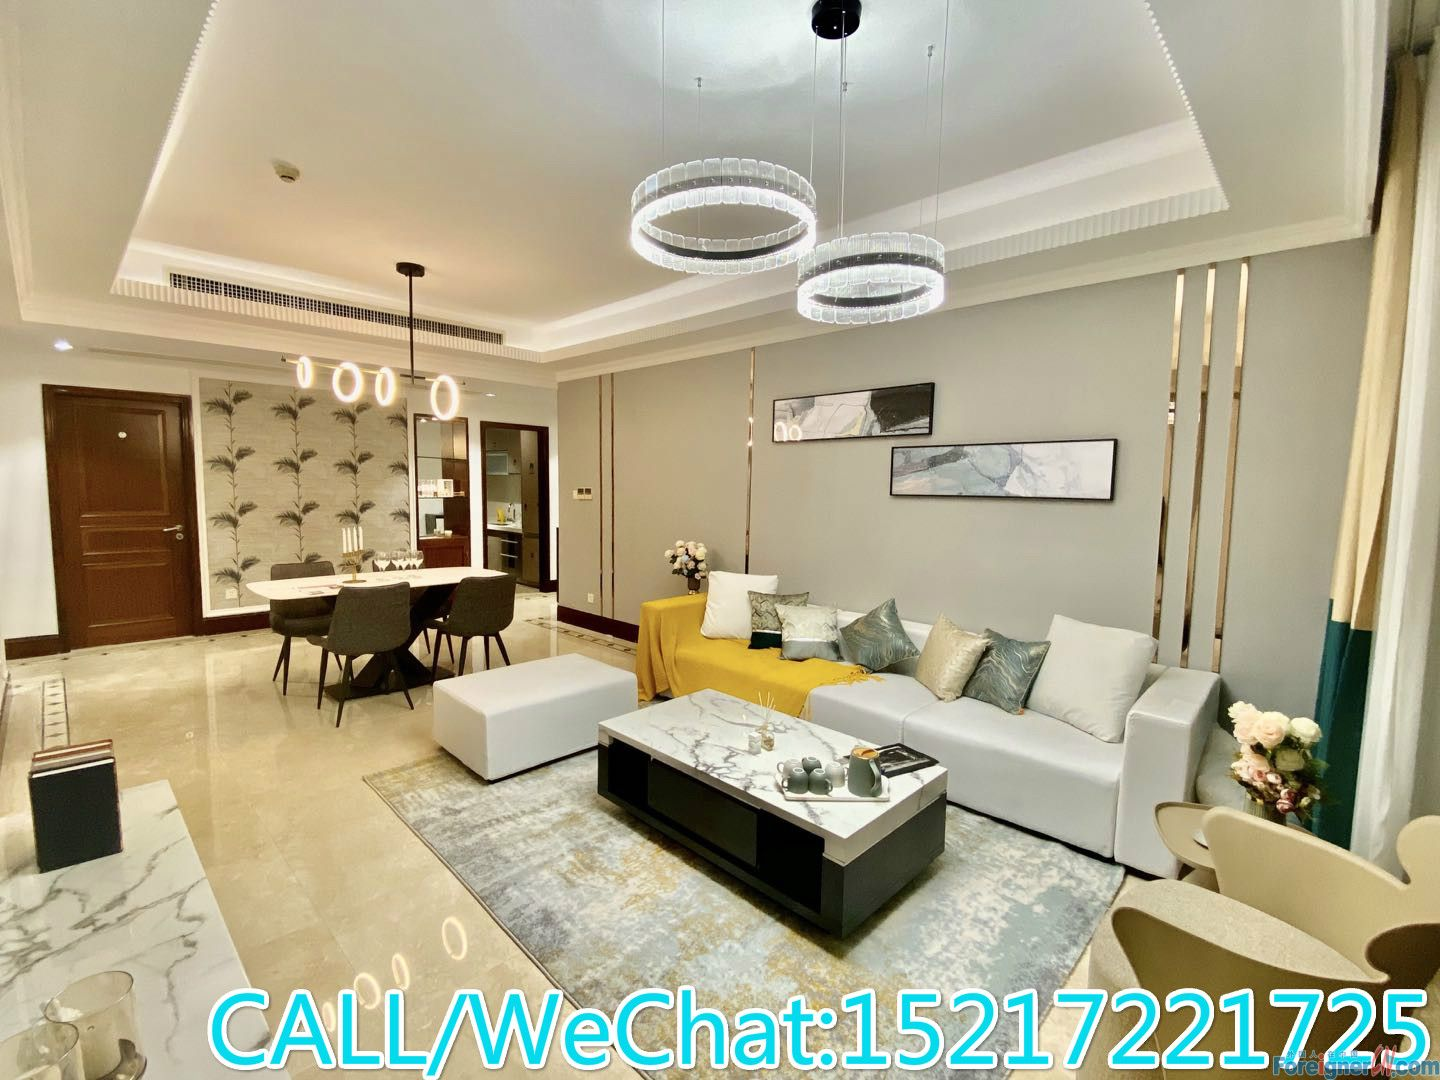 Morden decoration 3brs,fully furnished,high floor,garden view,quiet place,CBD AREA.